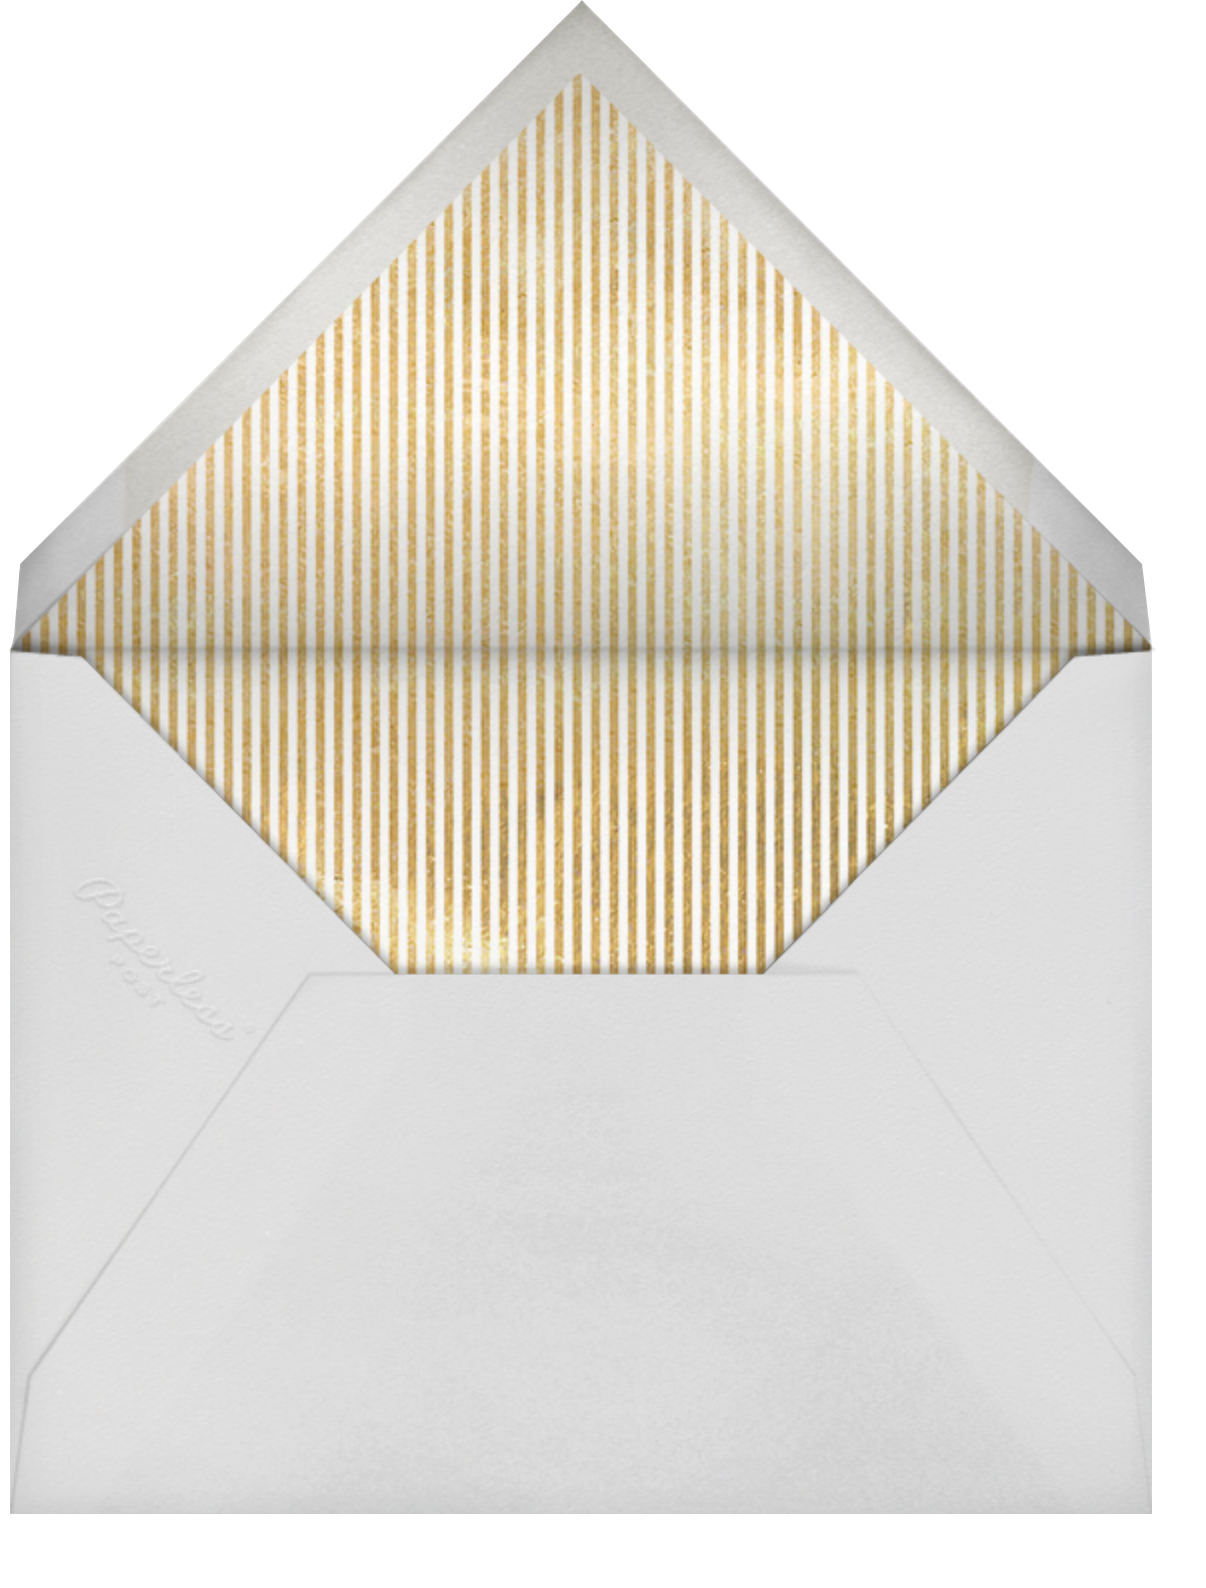 Massive Thanks - Gold - Paperless Post - Graduation thank you cards - envelope back